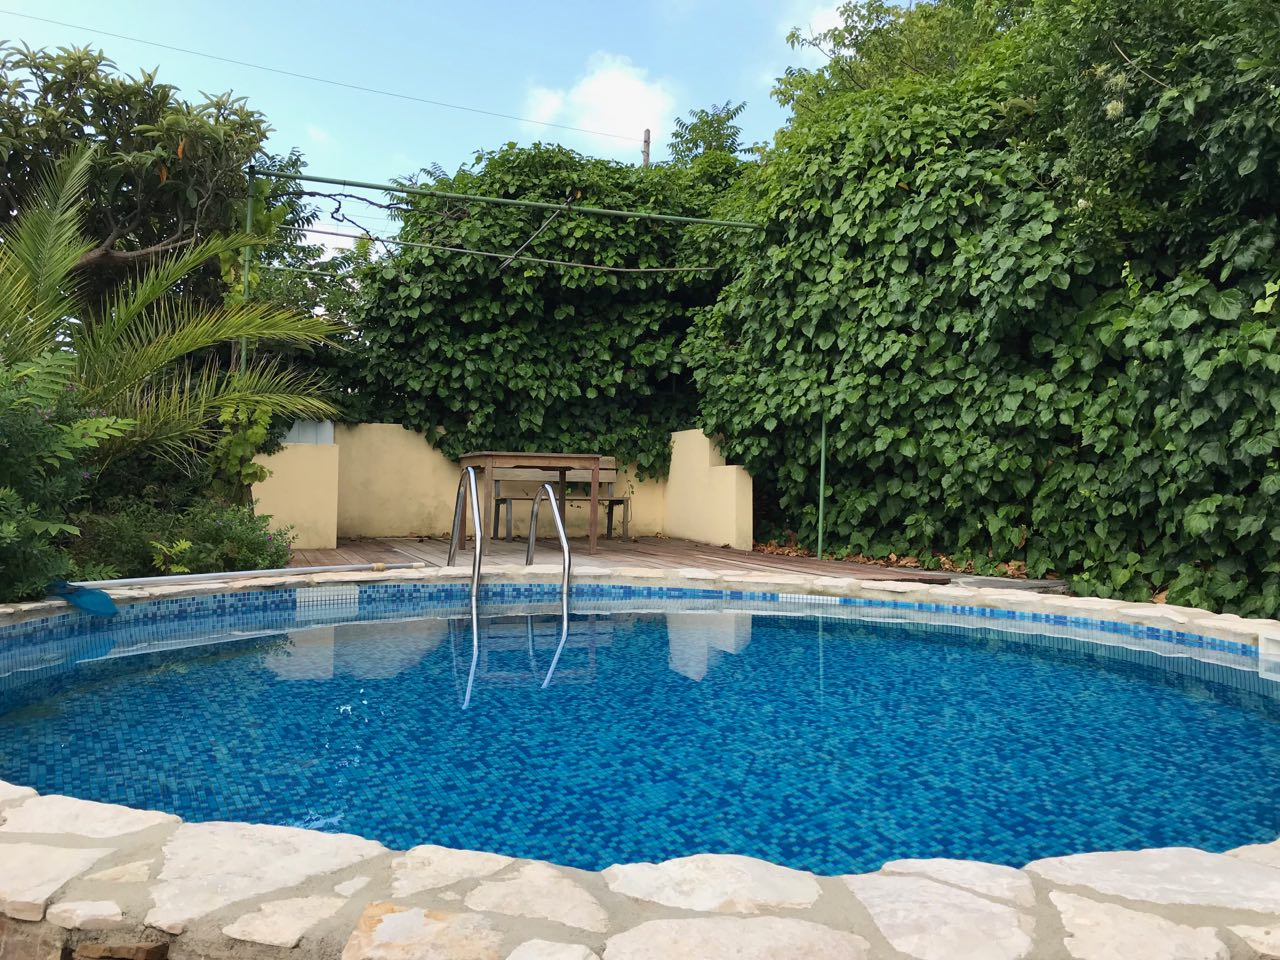 Imperia villa with pool in a residential area